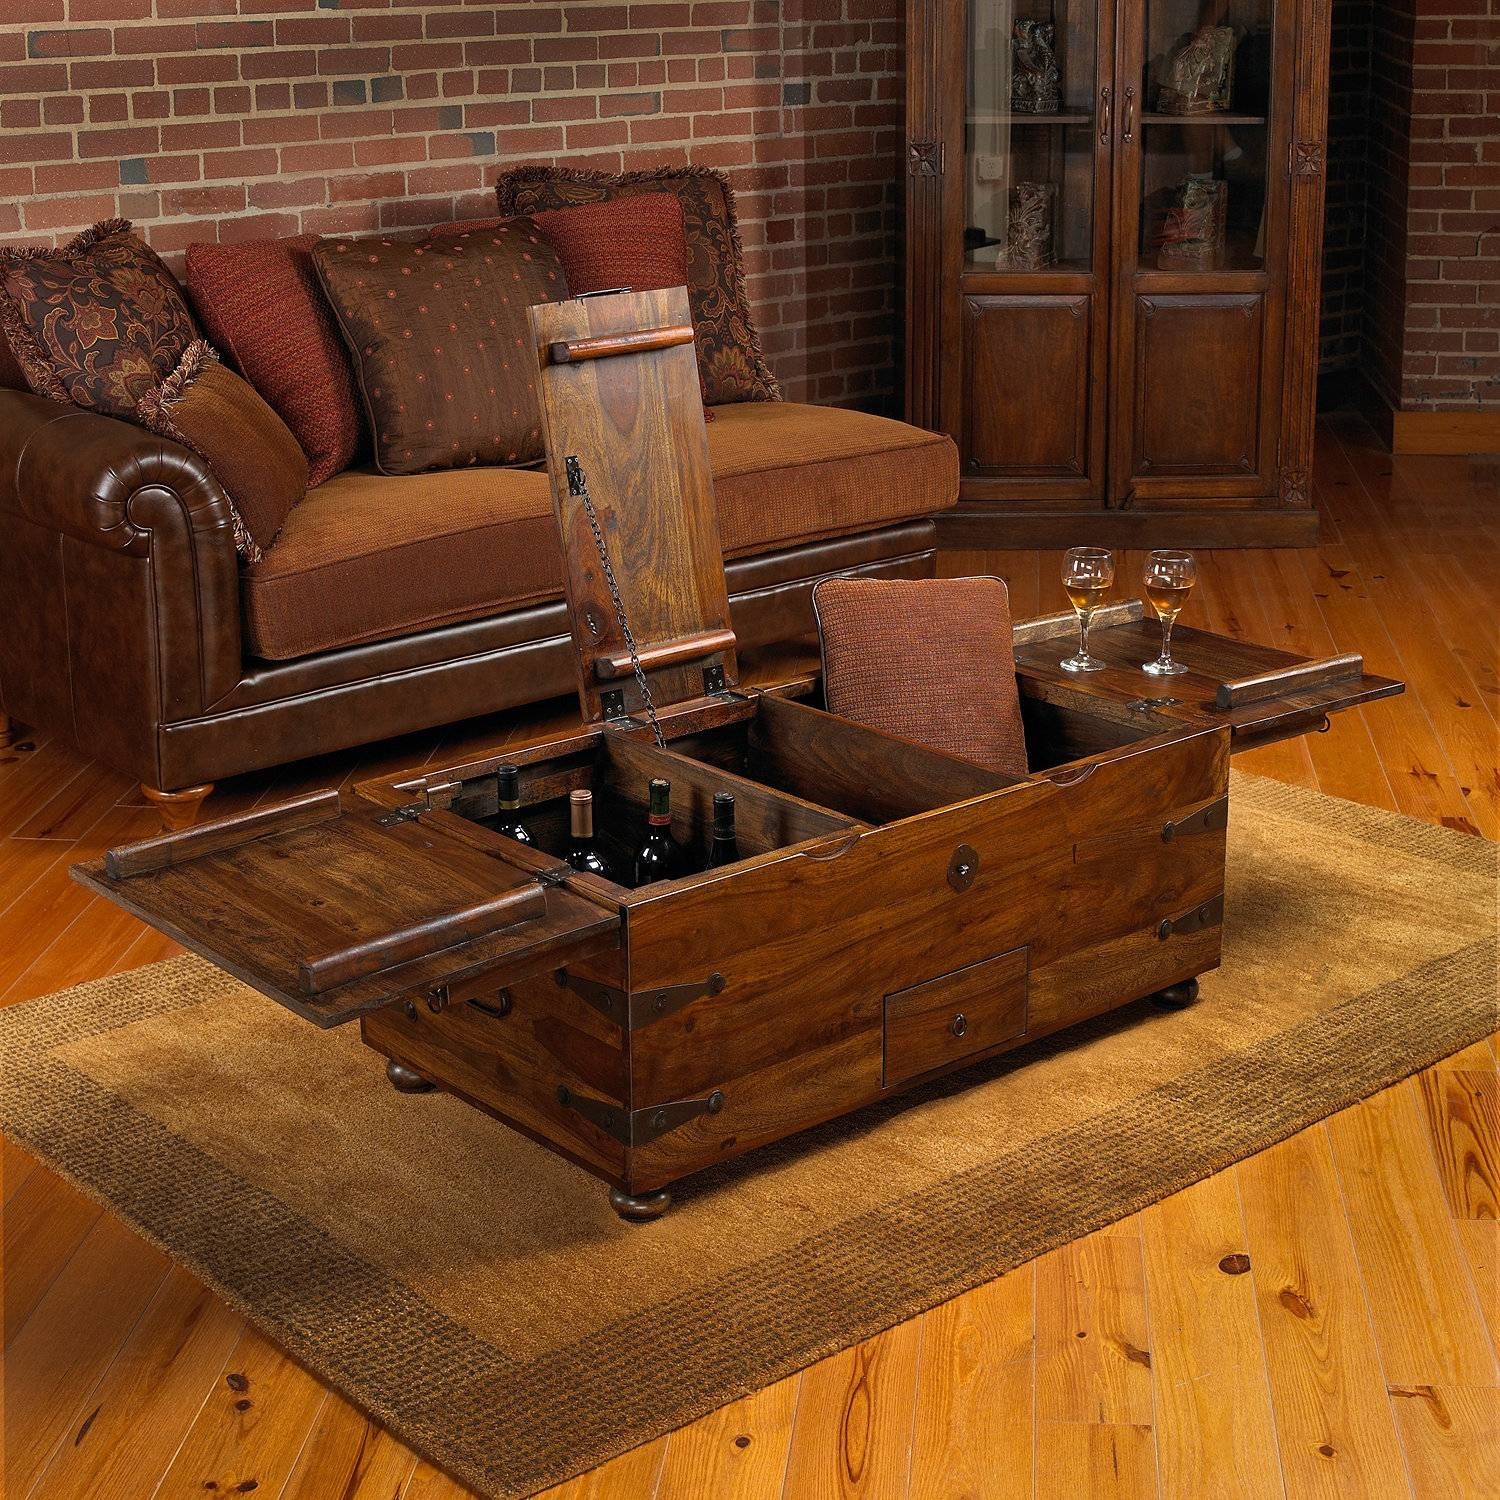 Thakat Bar Box Trunk Coffee Table - Wine Enthusiast with regard to Trunk Coffee Tables (Image 25 of 30)